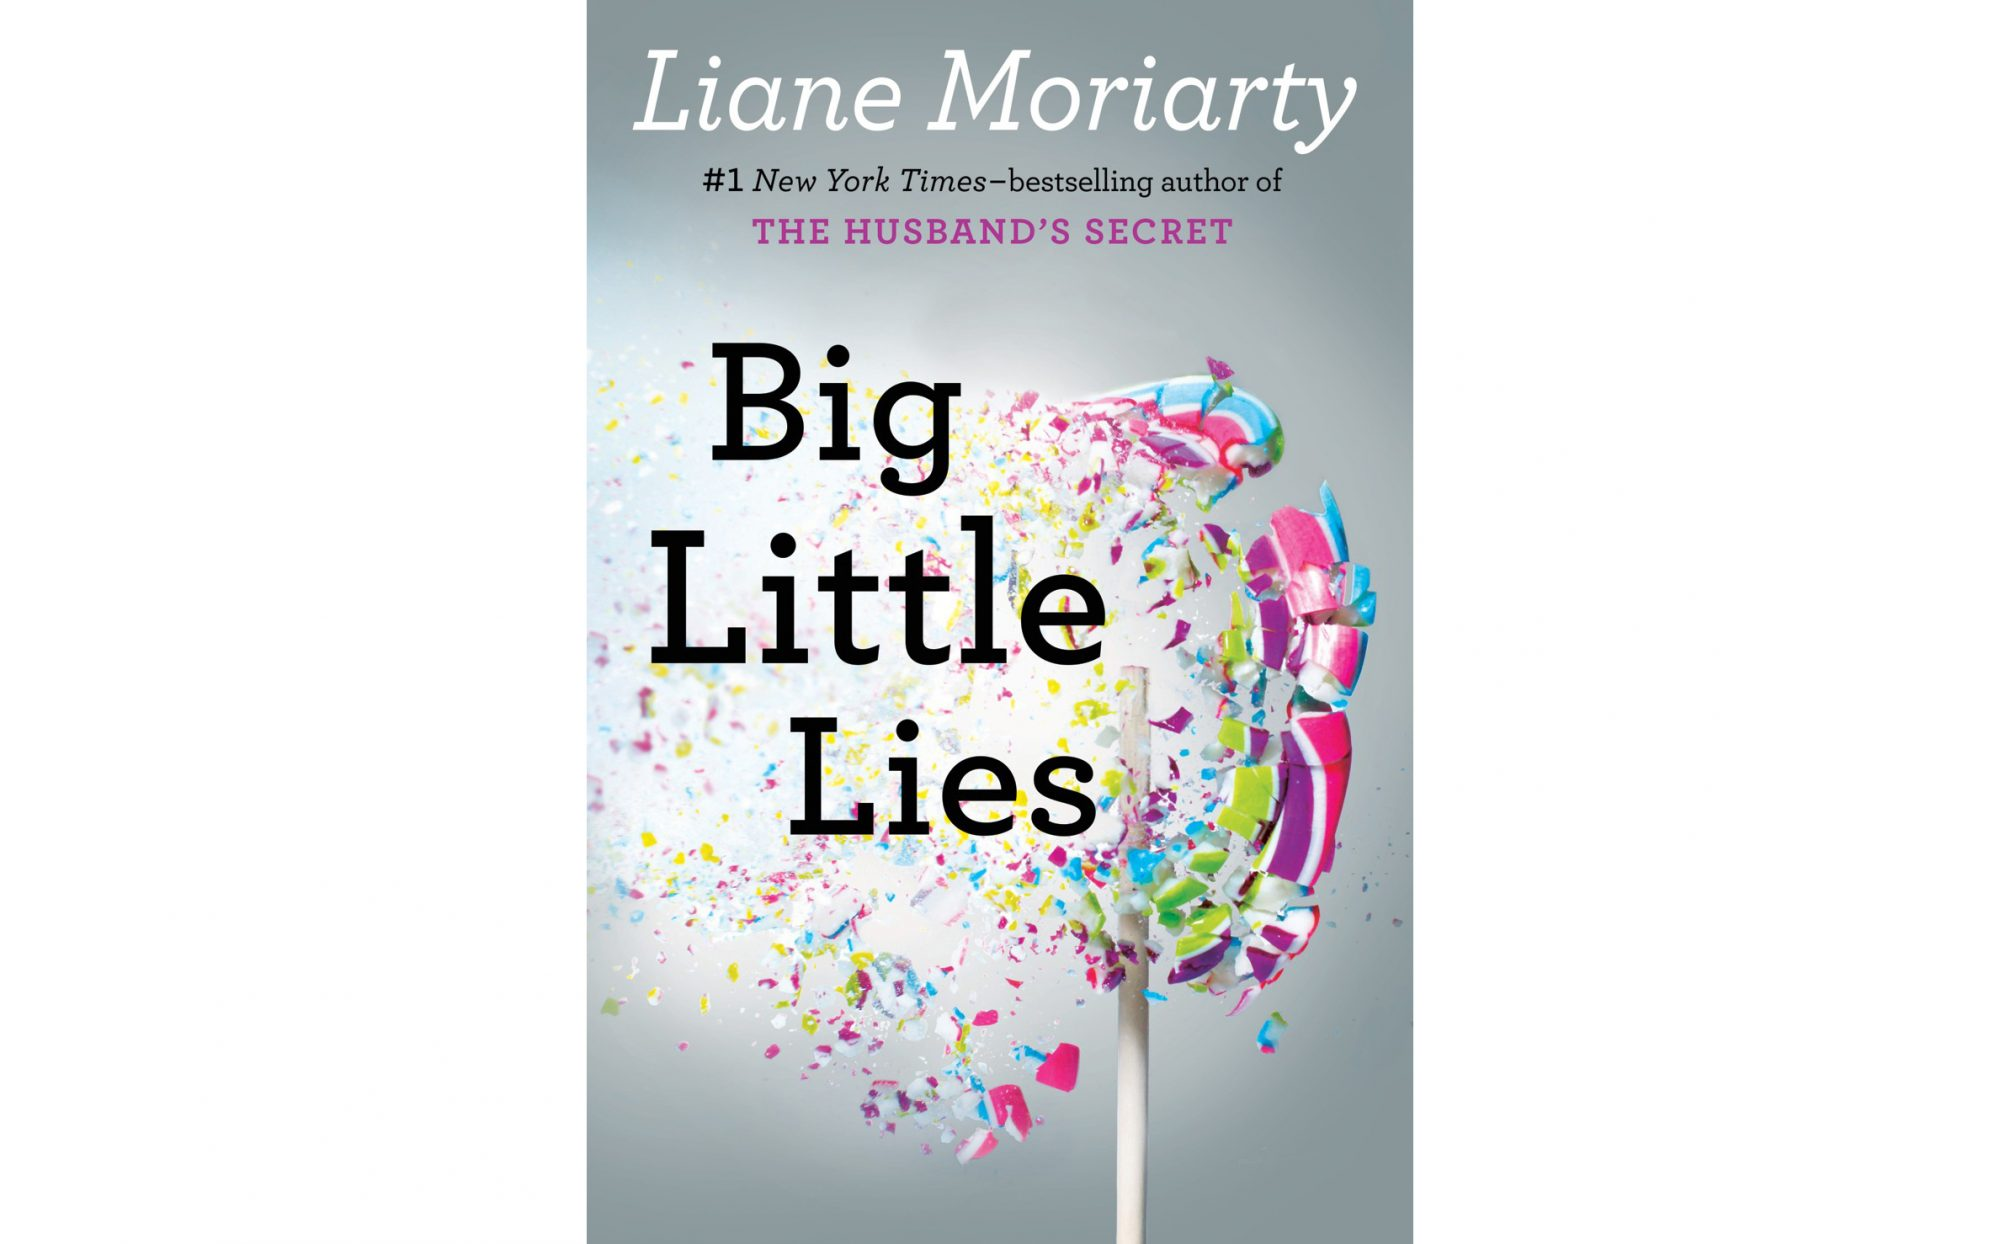 Big Little Lies, by Liane Moriarty